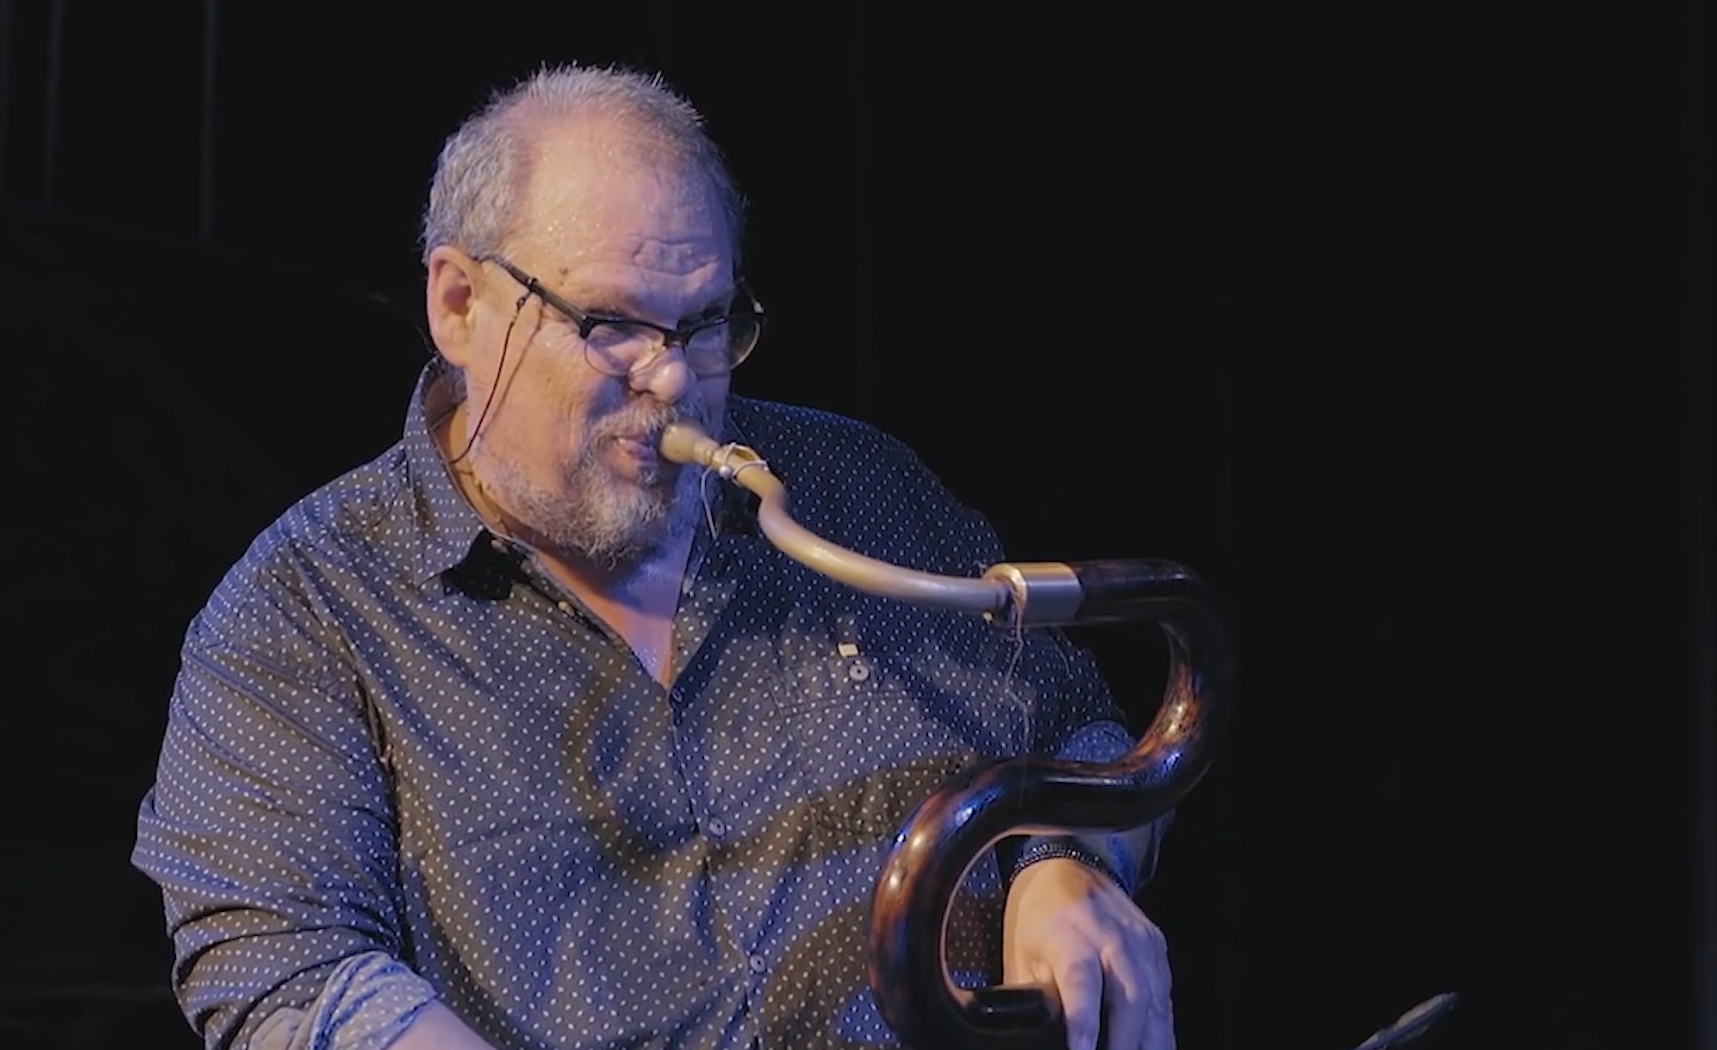 Michel Godard performing at Morgenland festival, Germany, in  2016